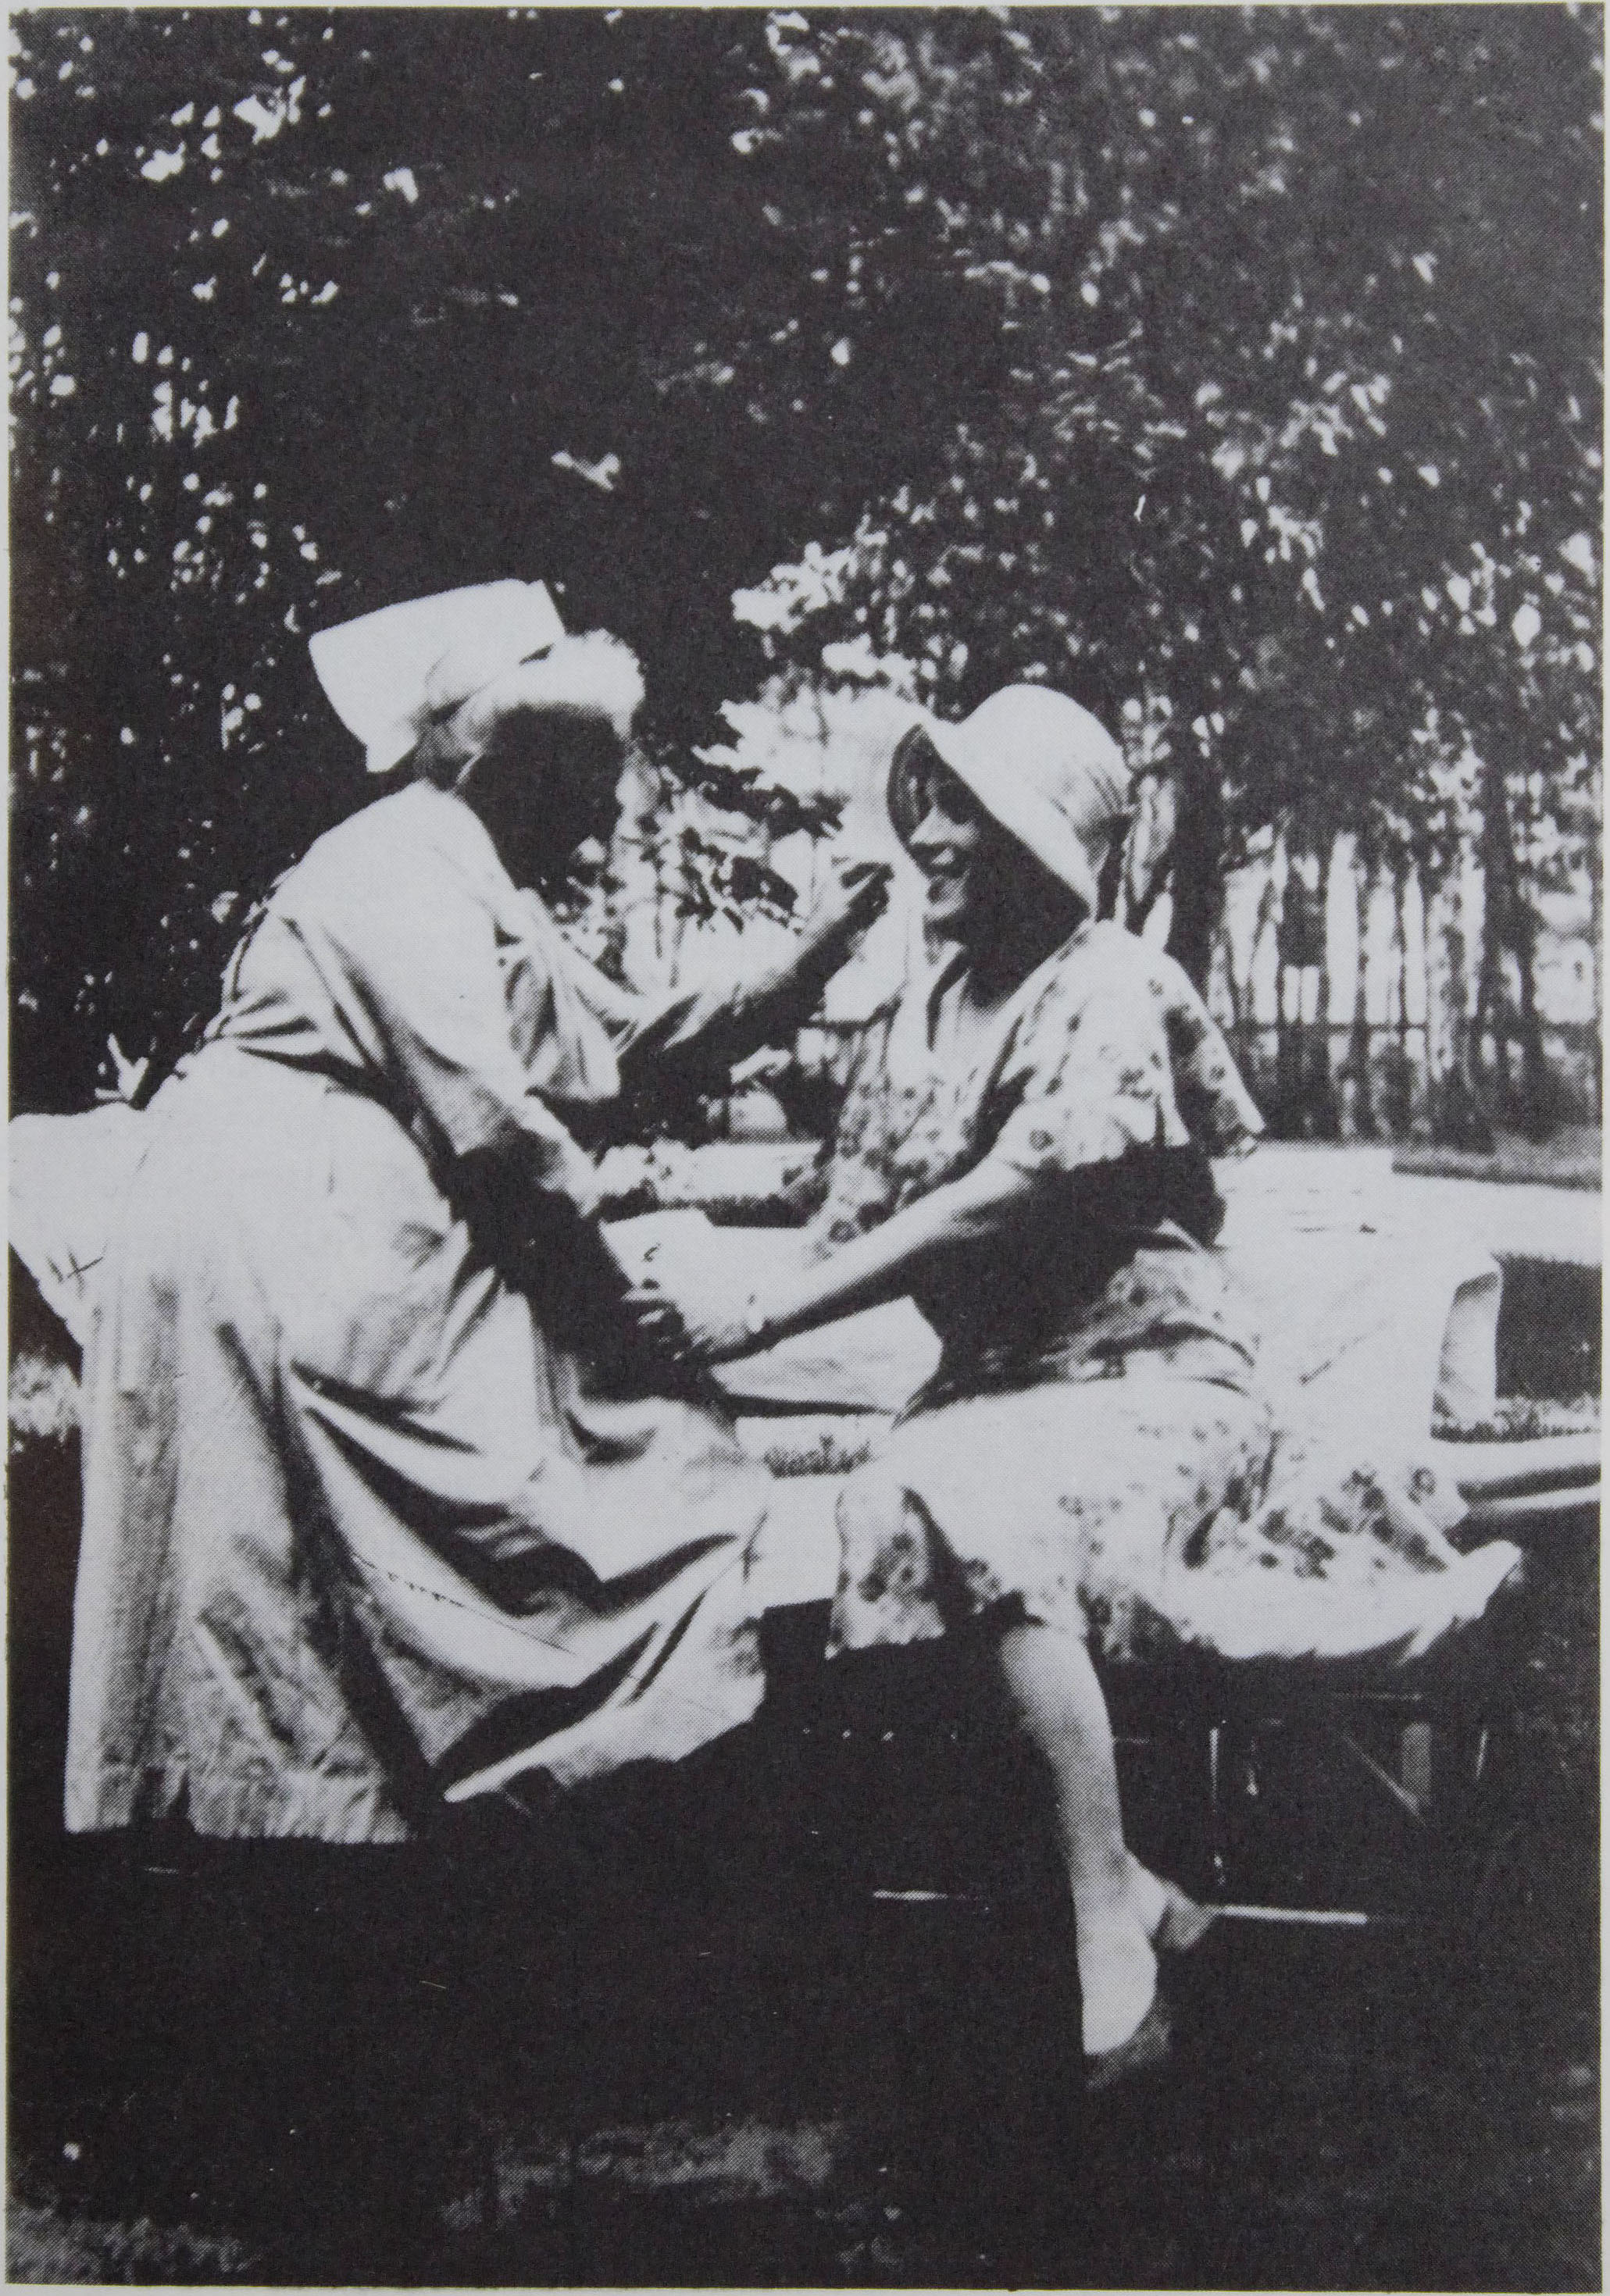 The photo, which takes up the whole page along with the                      caption, is credited to The Royal Library, The Collection of Prints and                      Photographs. It shows Lili Elbe dressed in dress, pumps, and hat outside the                      Frauenklinik in Dresden with a nurse after surgery.